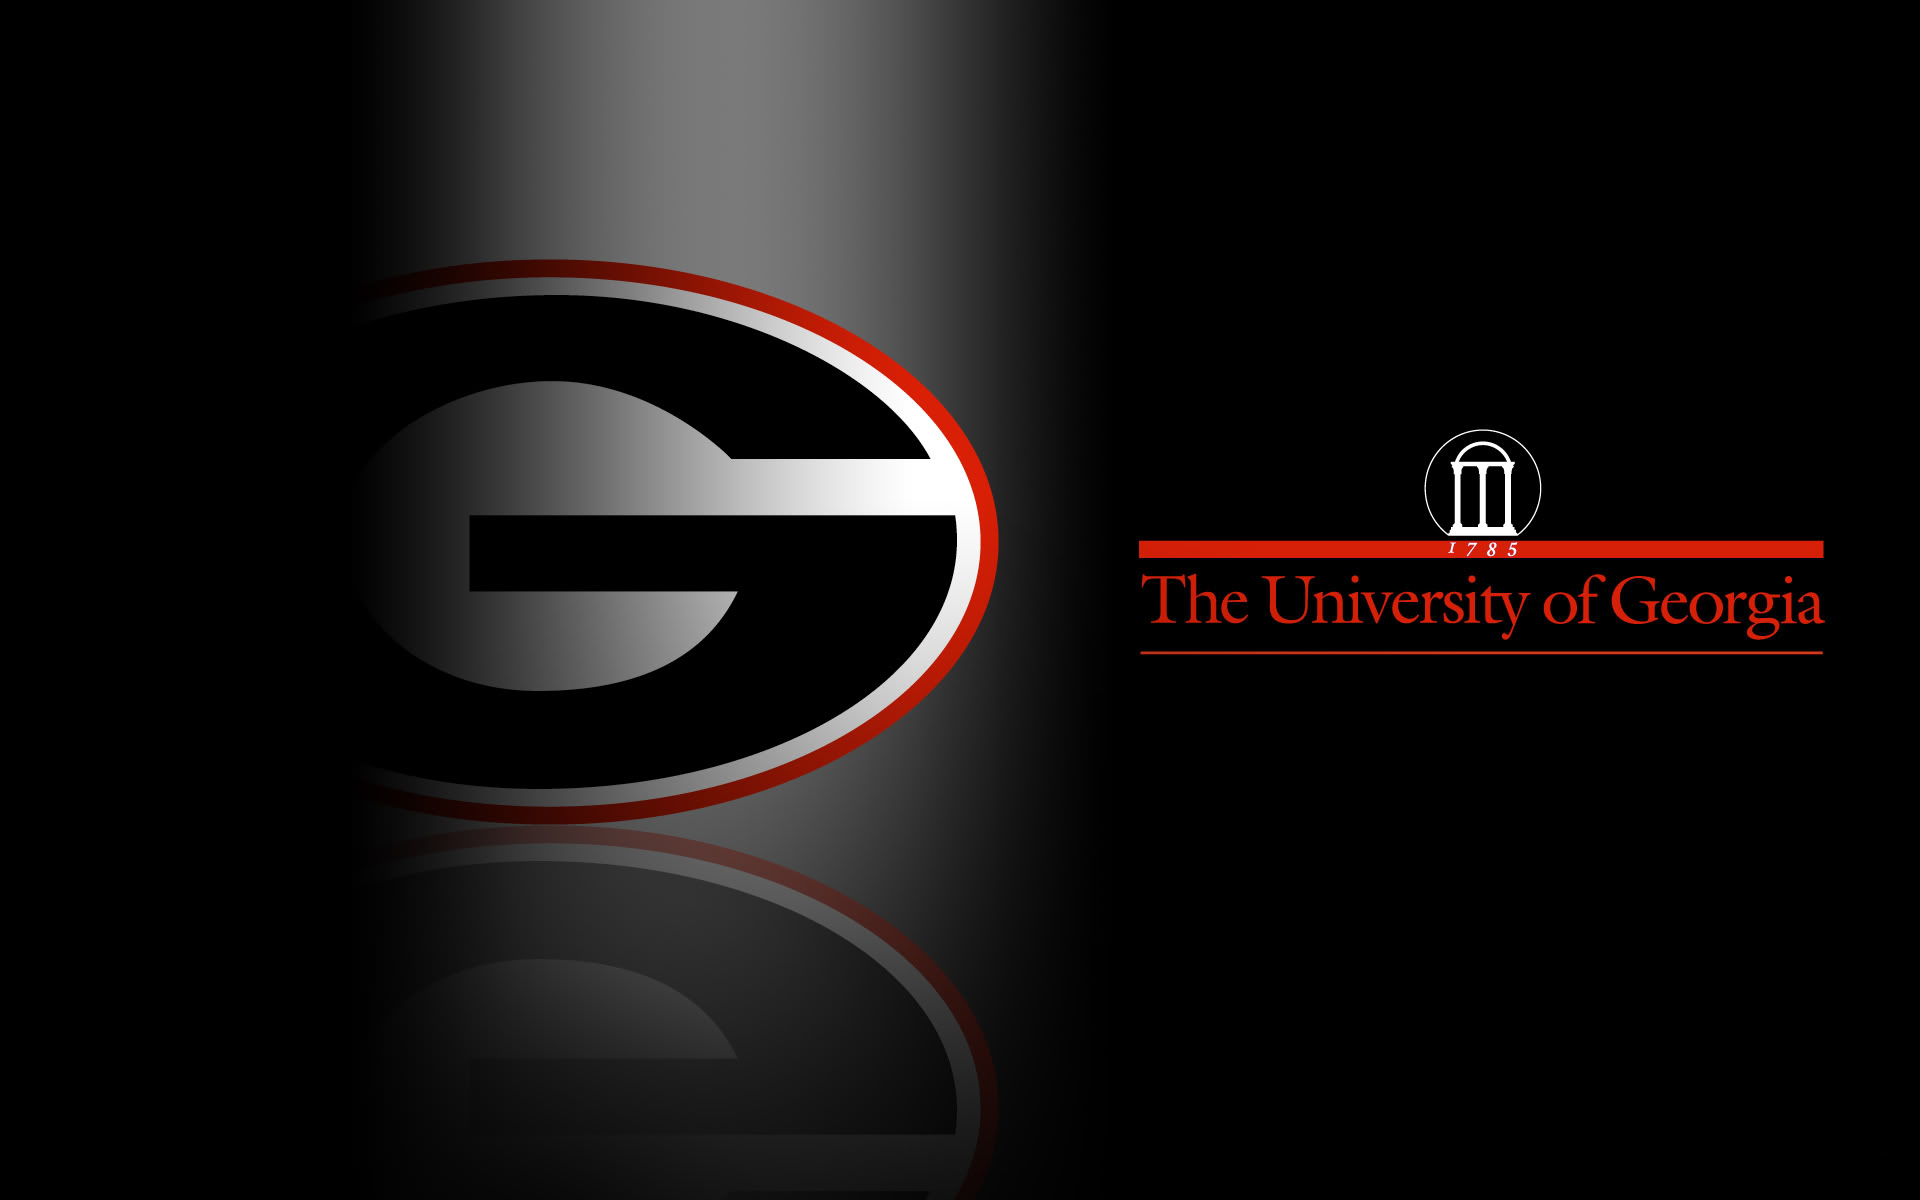 Georgia Bulldog Wallpapers Browser Themes More 1920x1200